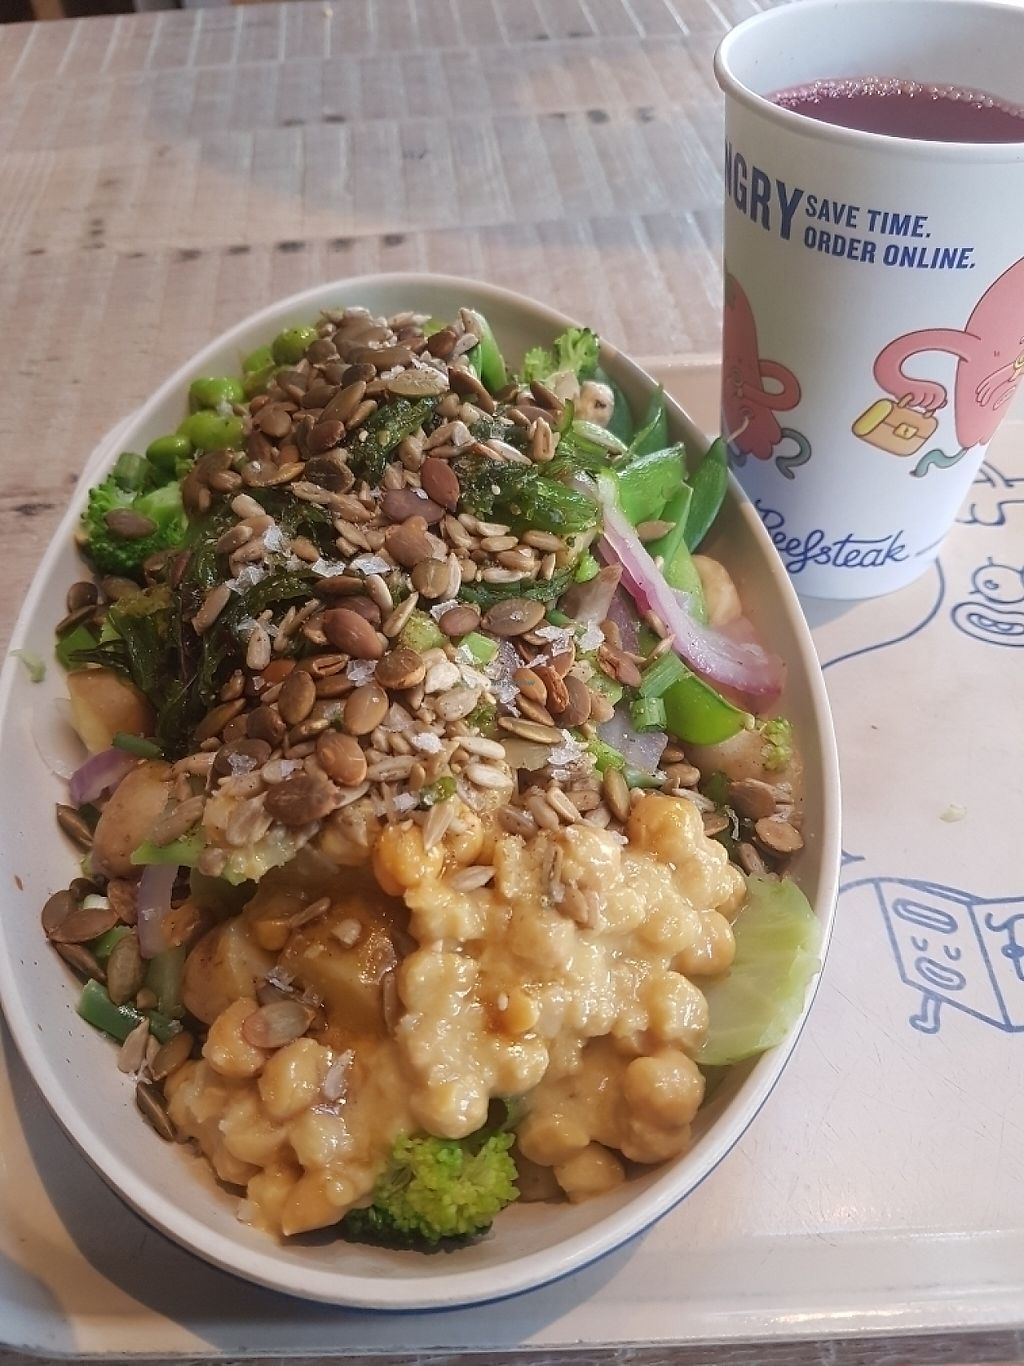 """Photo of Beefsteak - Dupont  by <a href=""""/members/profile/kennyp353"""">kennyp353</a> <br/>Huge portion <br/> June 2, 2017  - <a href='/contact/abuse/image/65296/265108'>Report</a>"""